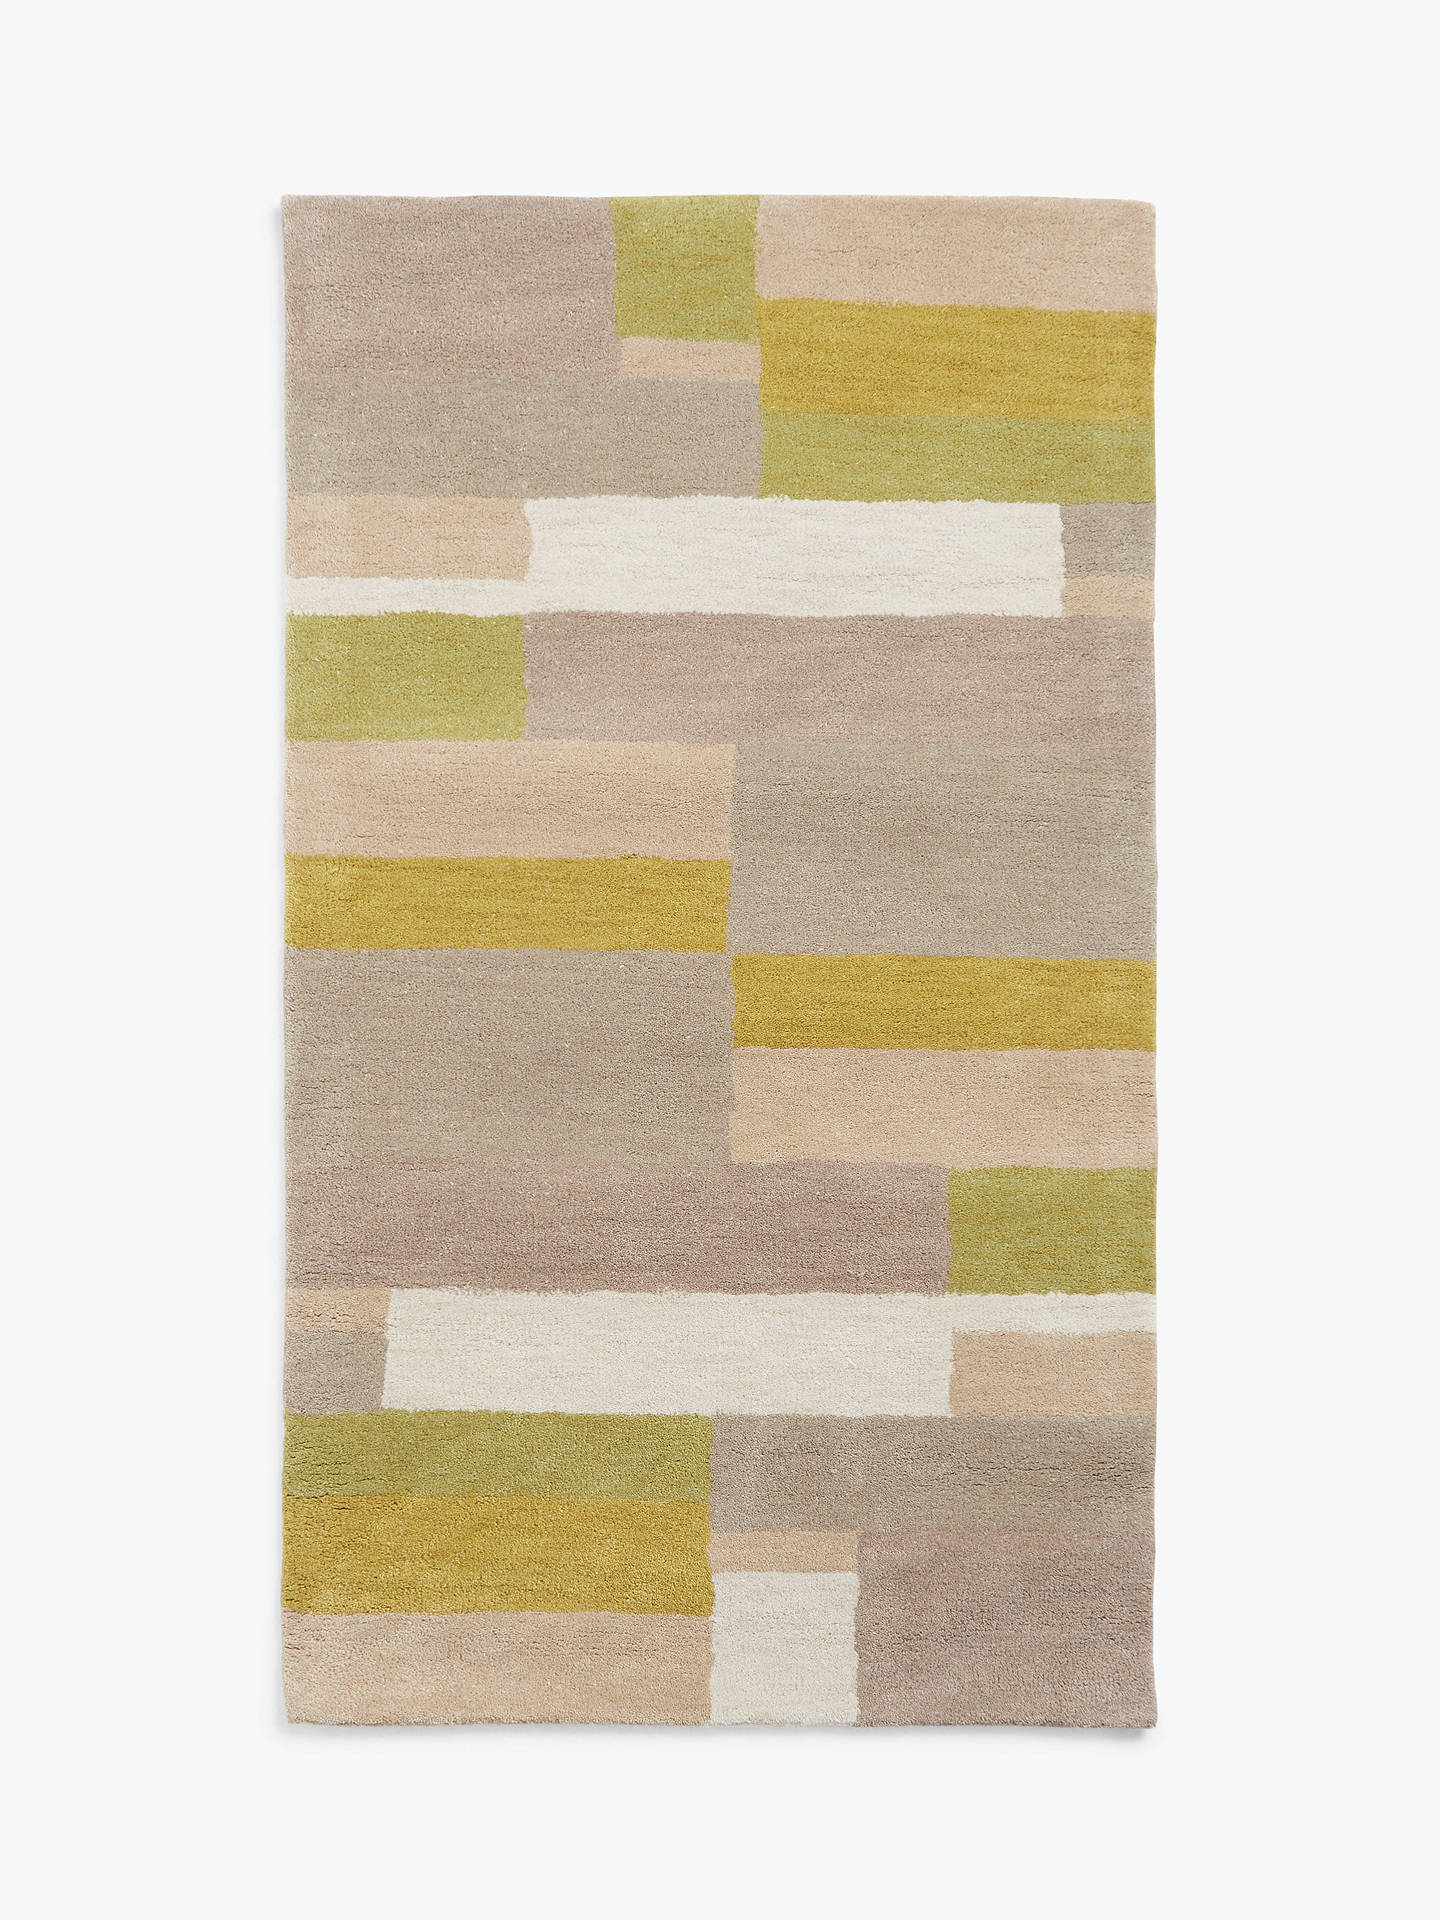 Buy John Lewis & Partners Grid Rug, Fennel, L140 x W80cm Online at johnlewis.com